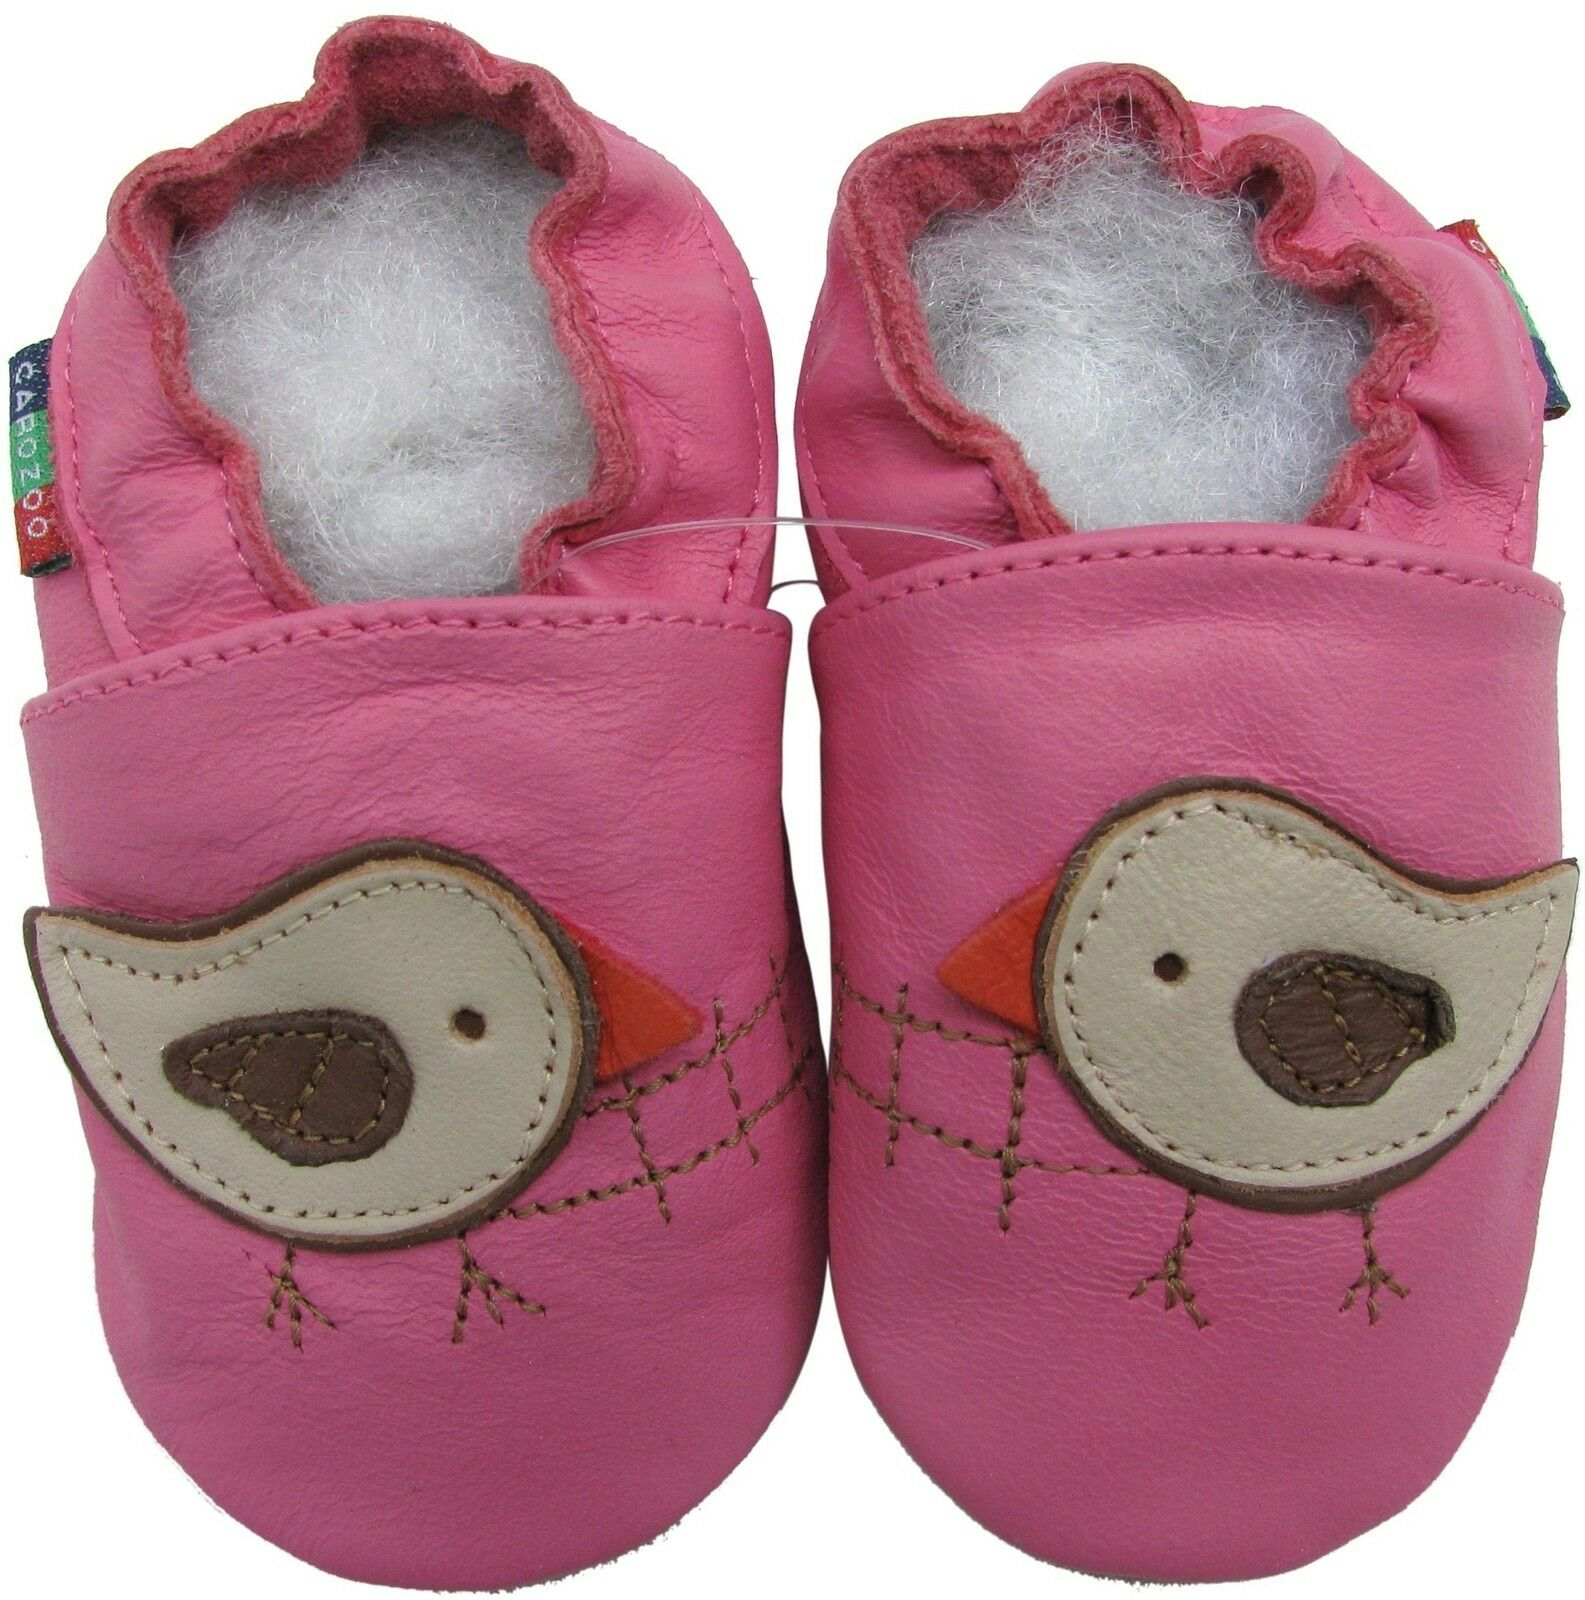 Shoeszoo Bird Pink 18 24m S Soft Sole Leather Baby Shoes